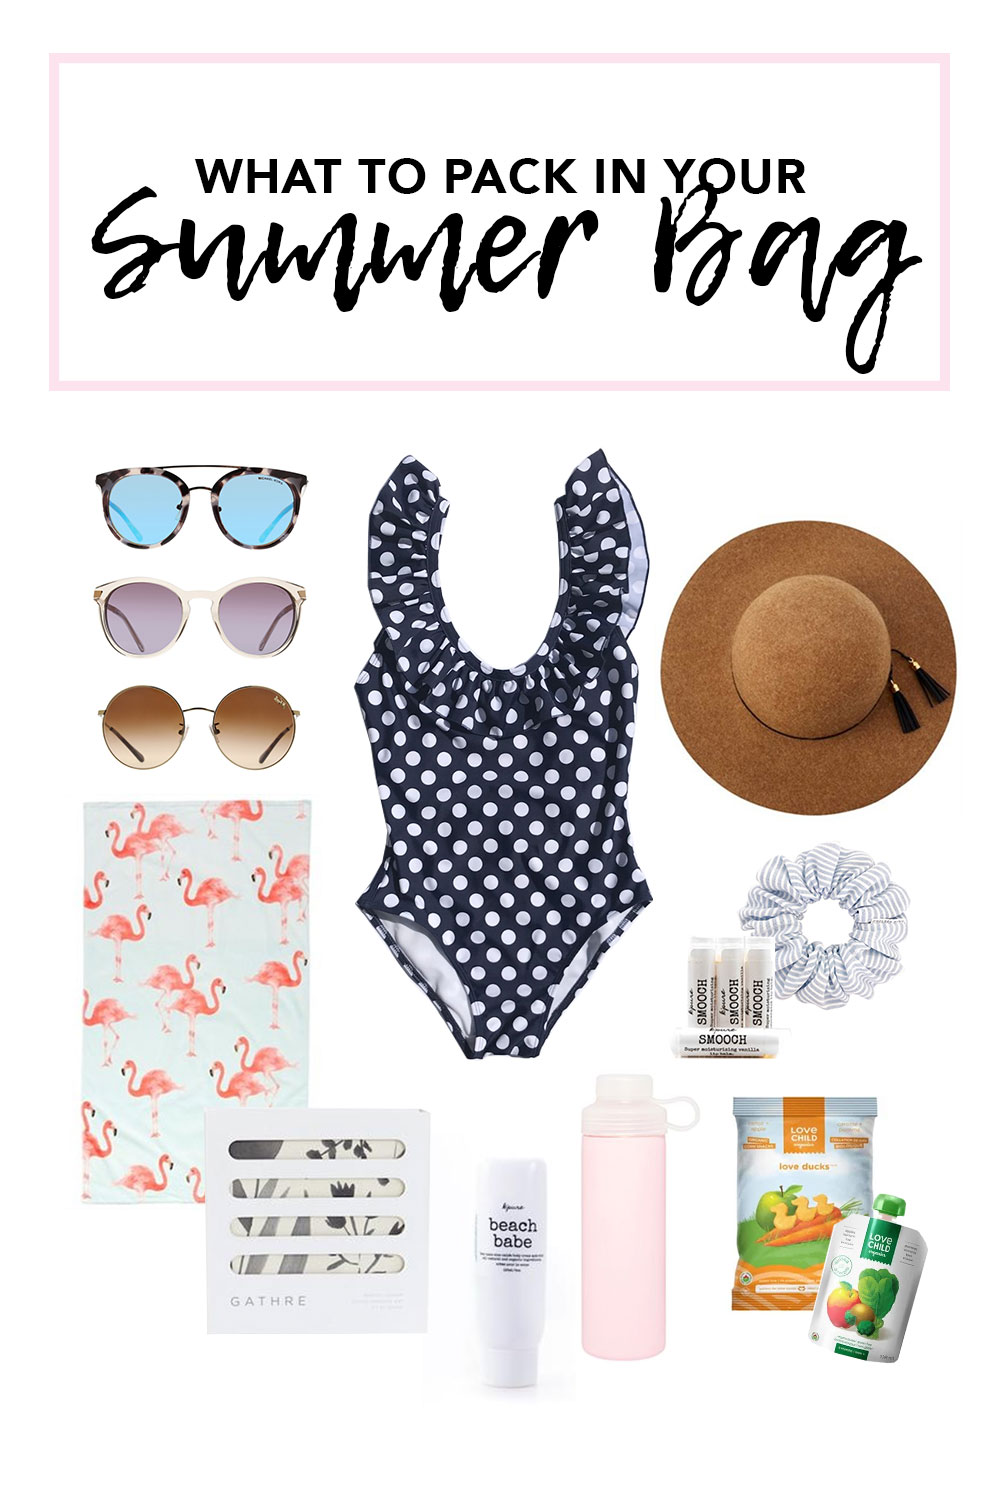 Summer Bag Checklist including women's sunglasses, swimsuit and more